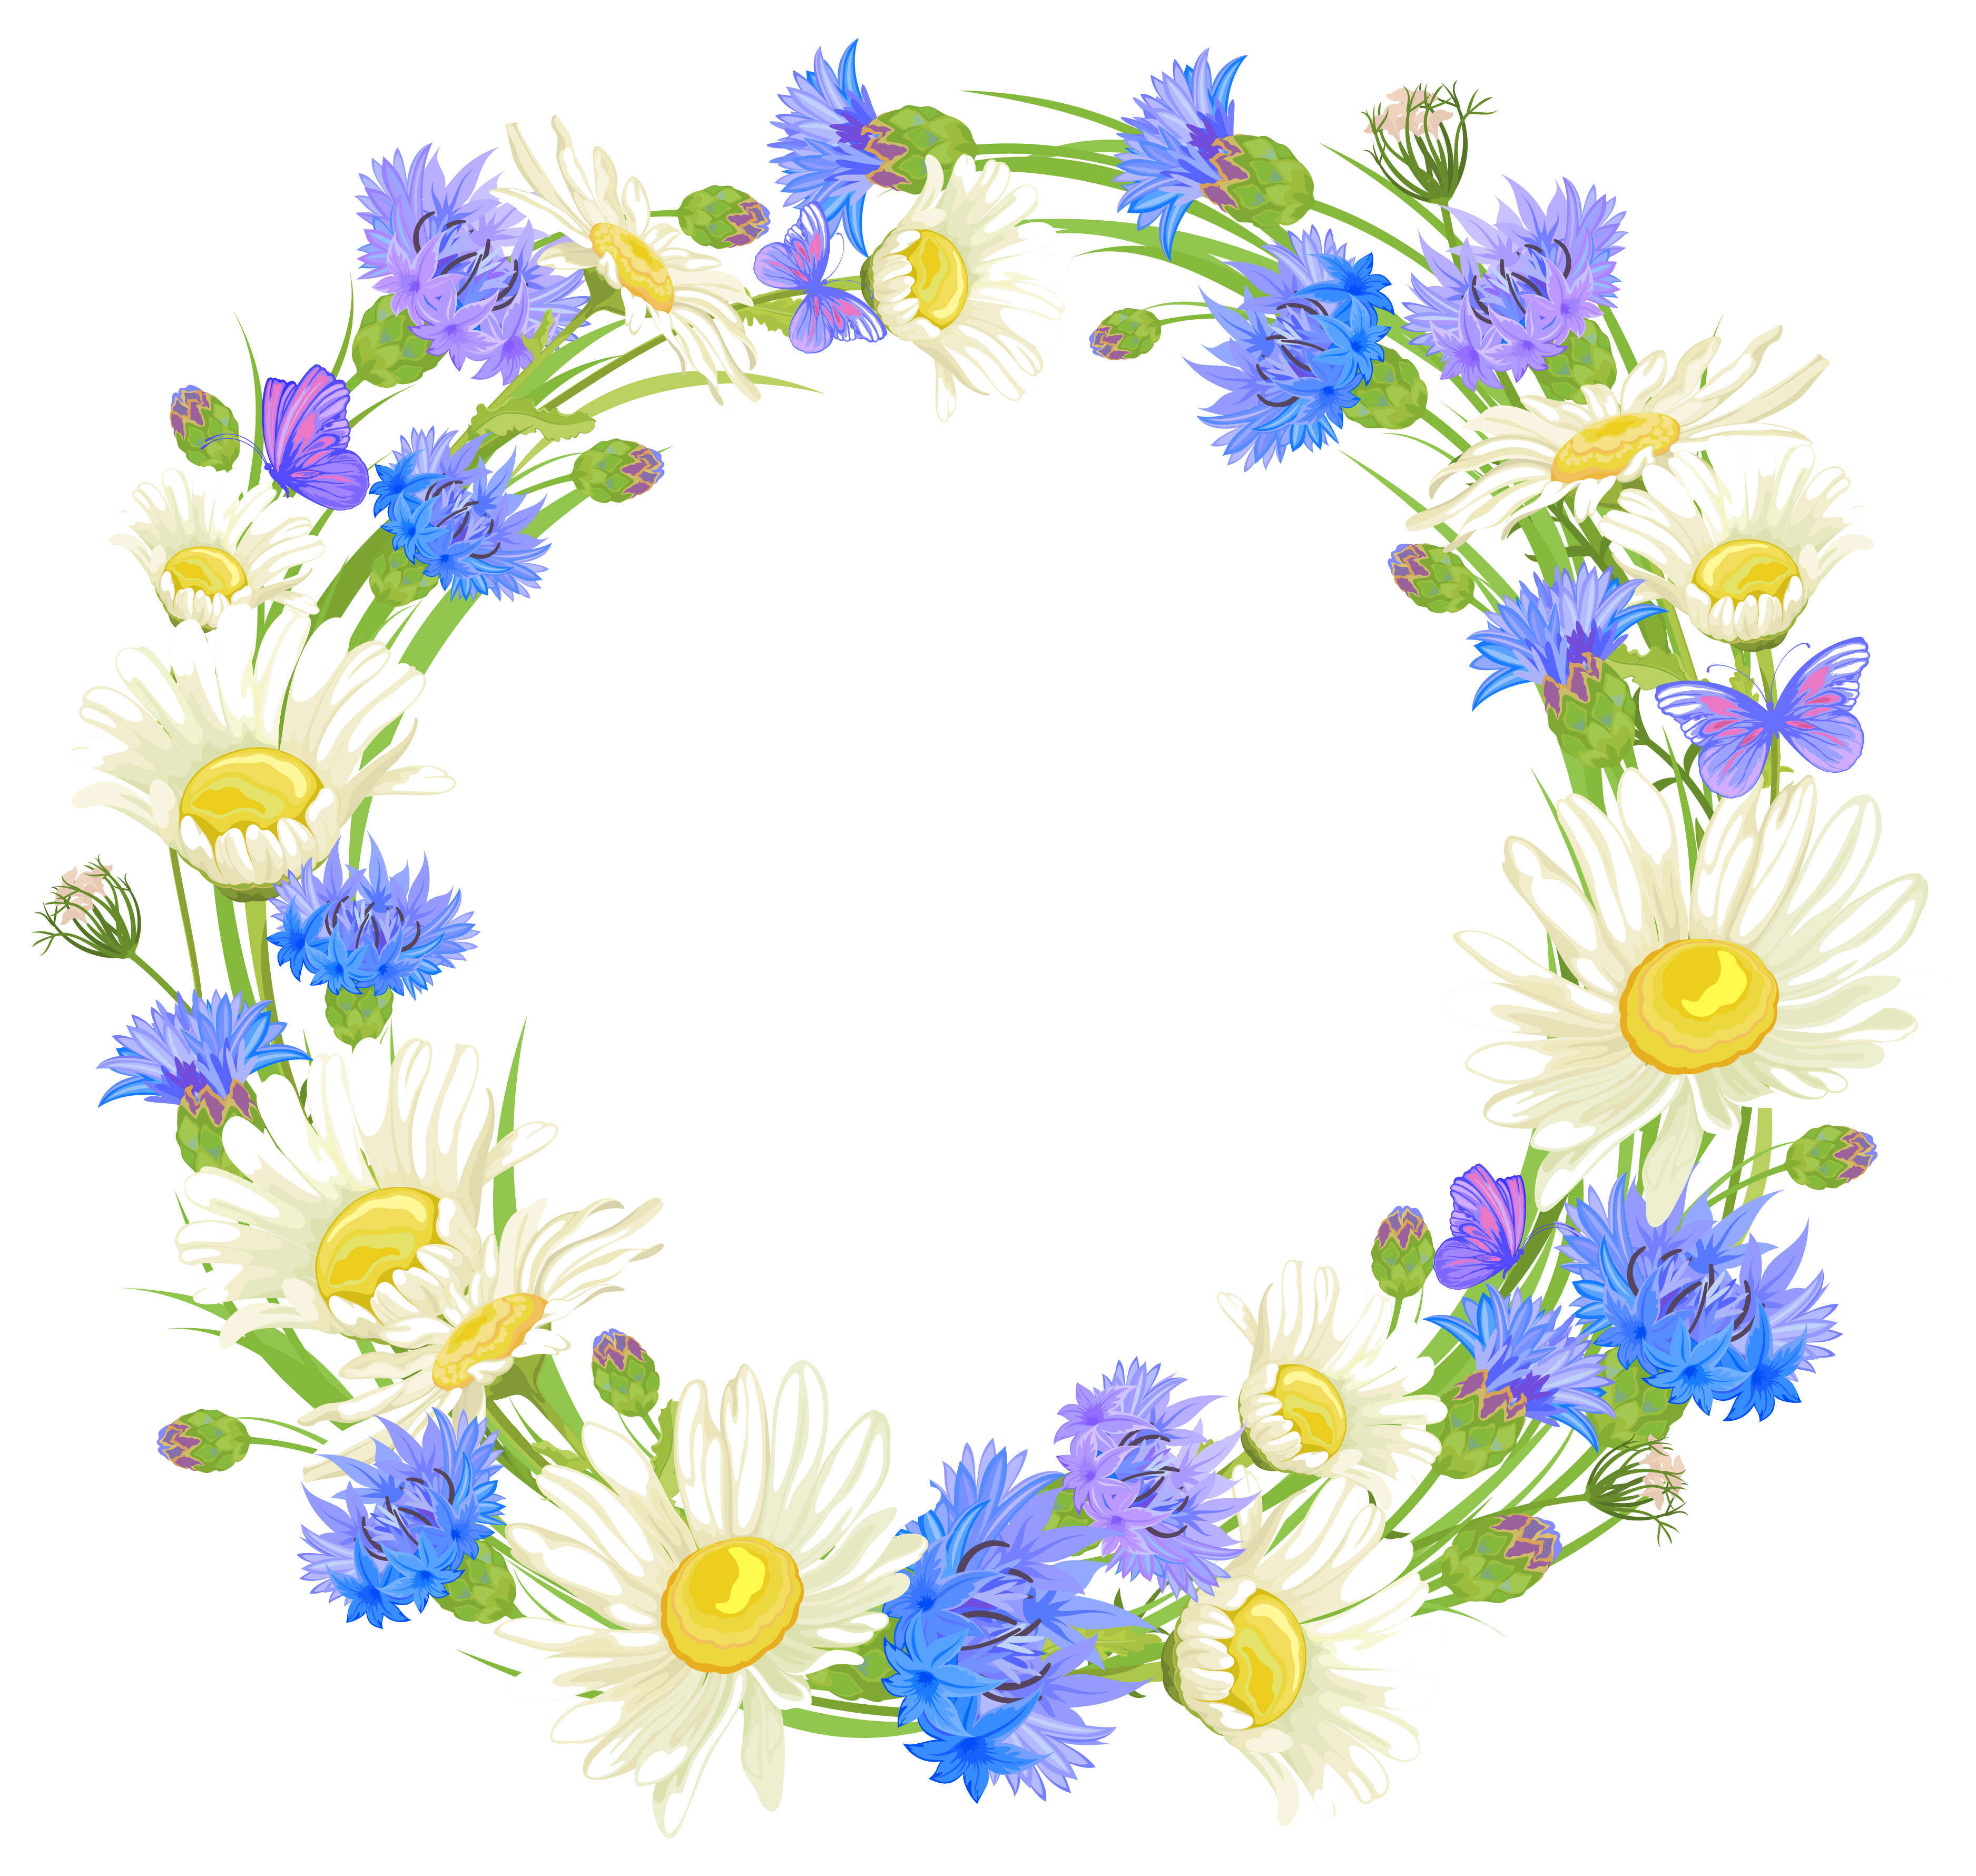 png royalty free Flower wreath clipart. Field flowers png gallery